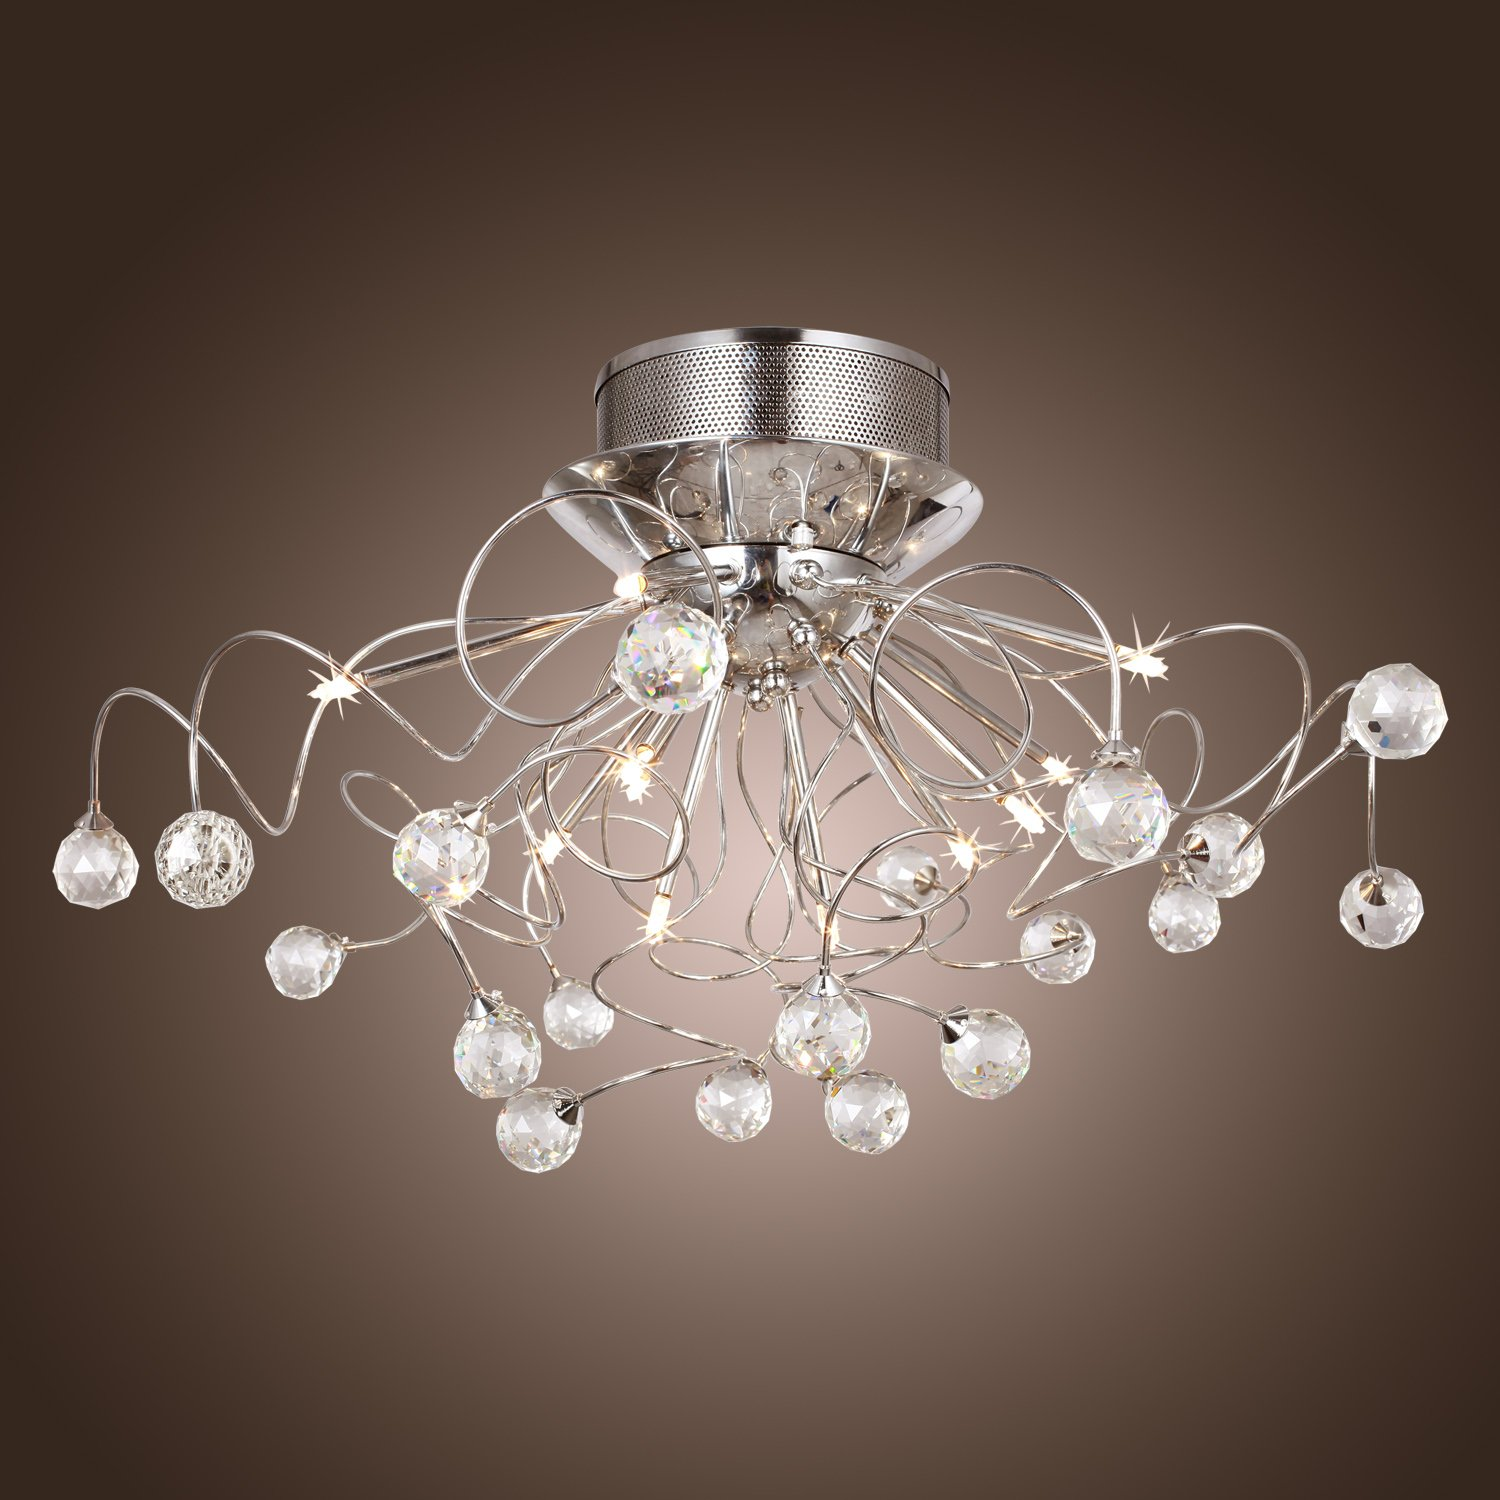 Lightinthebox modern crystal chandelier with 11 lights chrom flush mount chandeliers modern ceiling light fixture for hallway entry bedroom